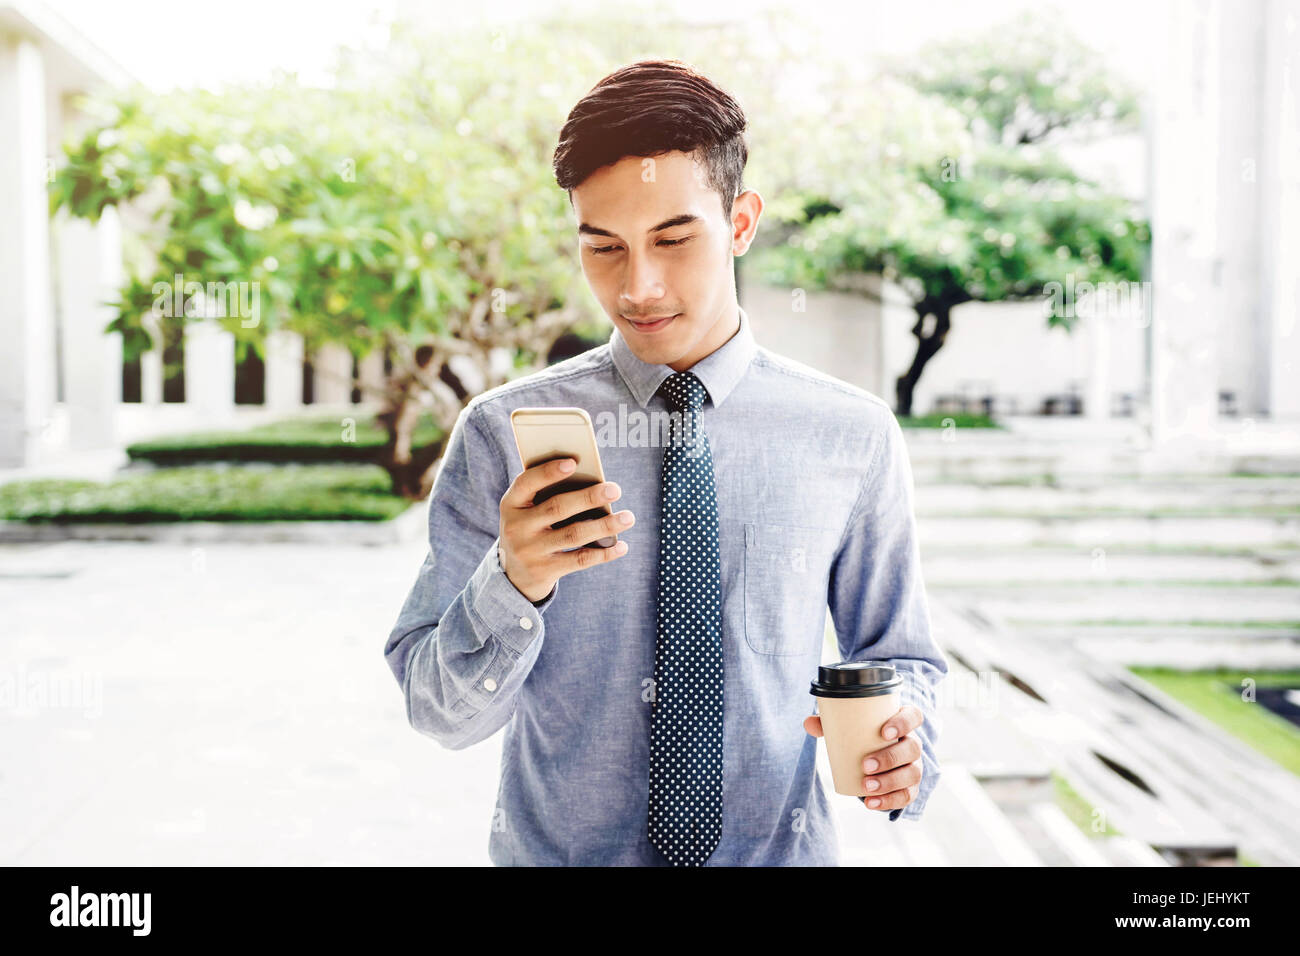 Friendly Businessman Smile with smart phone outdoor, Lifestyle of modern male to communicate or use technology in - Stock Image